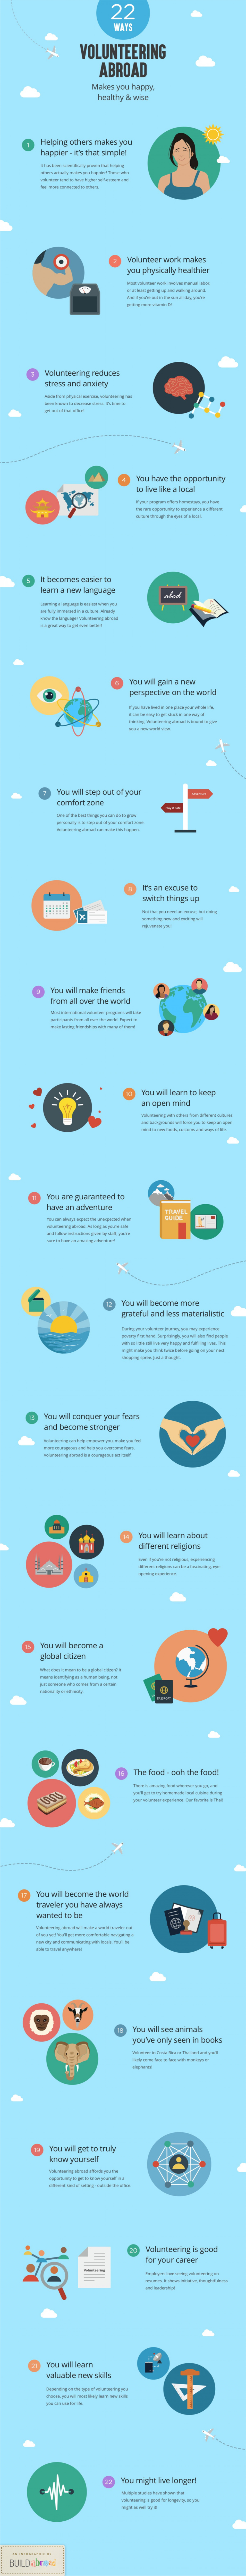 22 Ways Volunteering Abroad Makes you Healthy, Happy and Wise Infographic